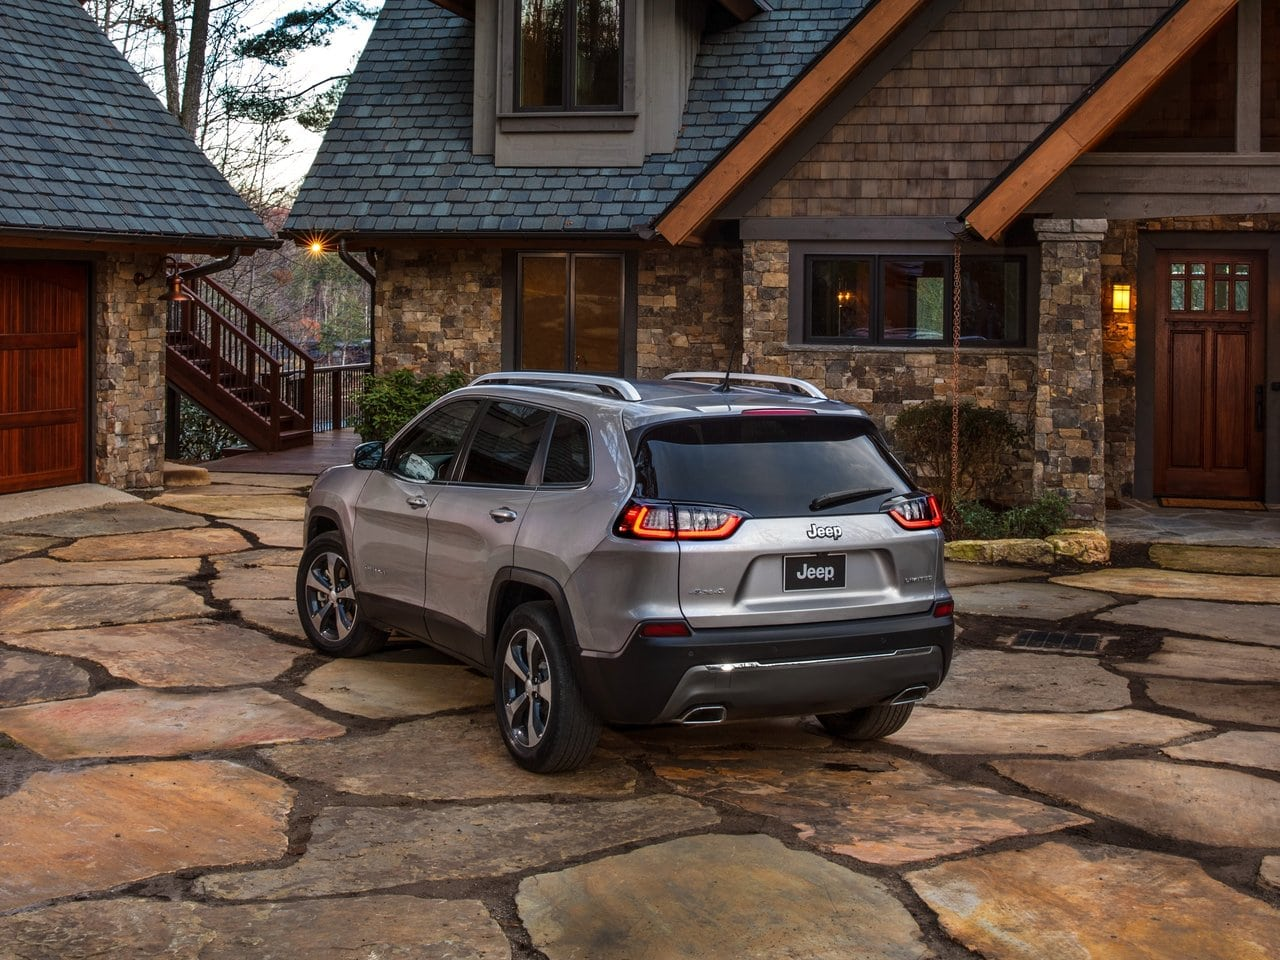 jeep_cherokee_v-res_offroad_5d_2-min